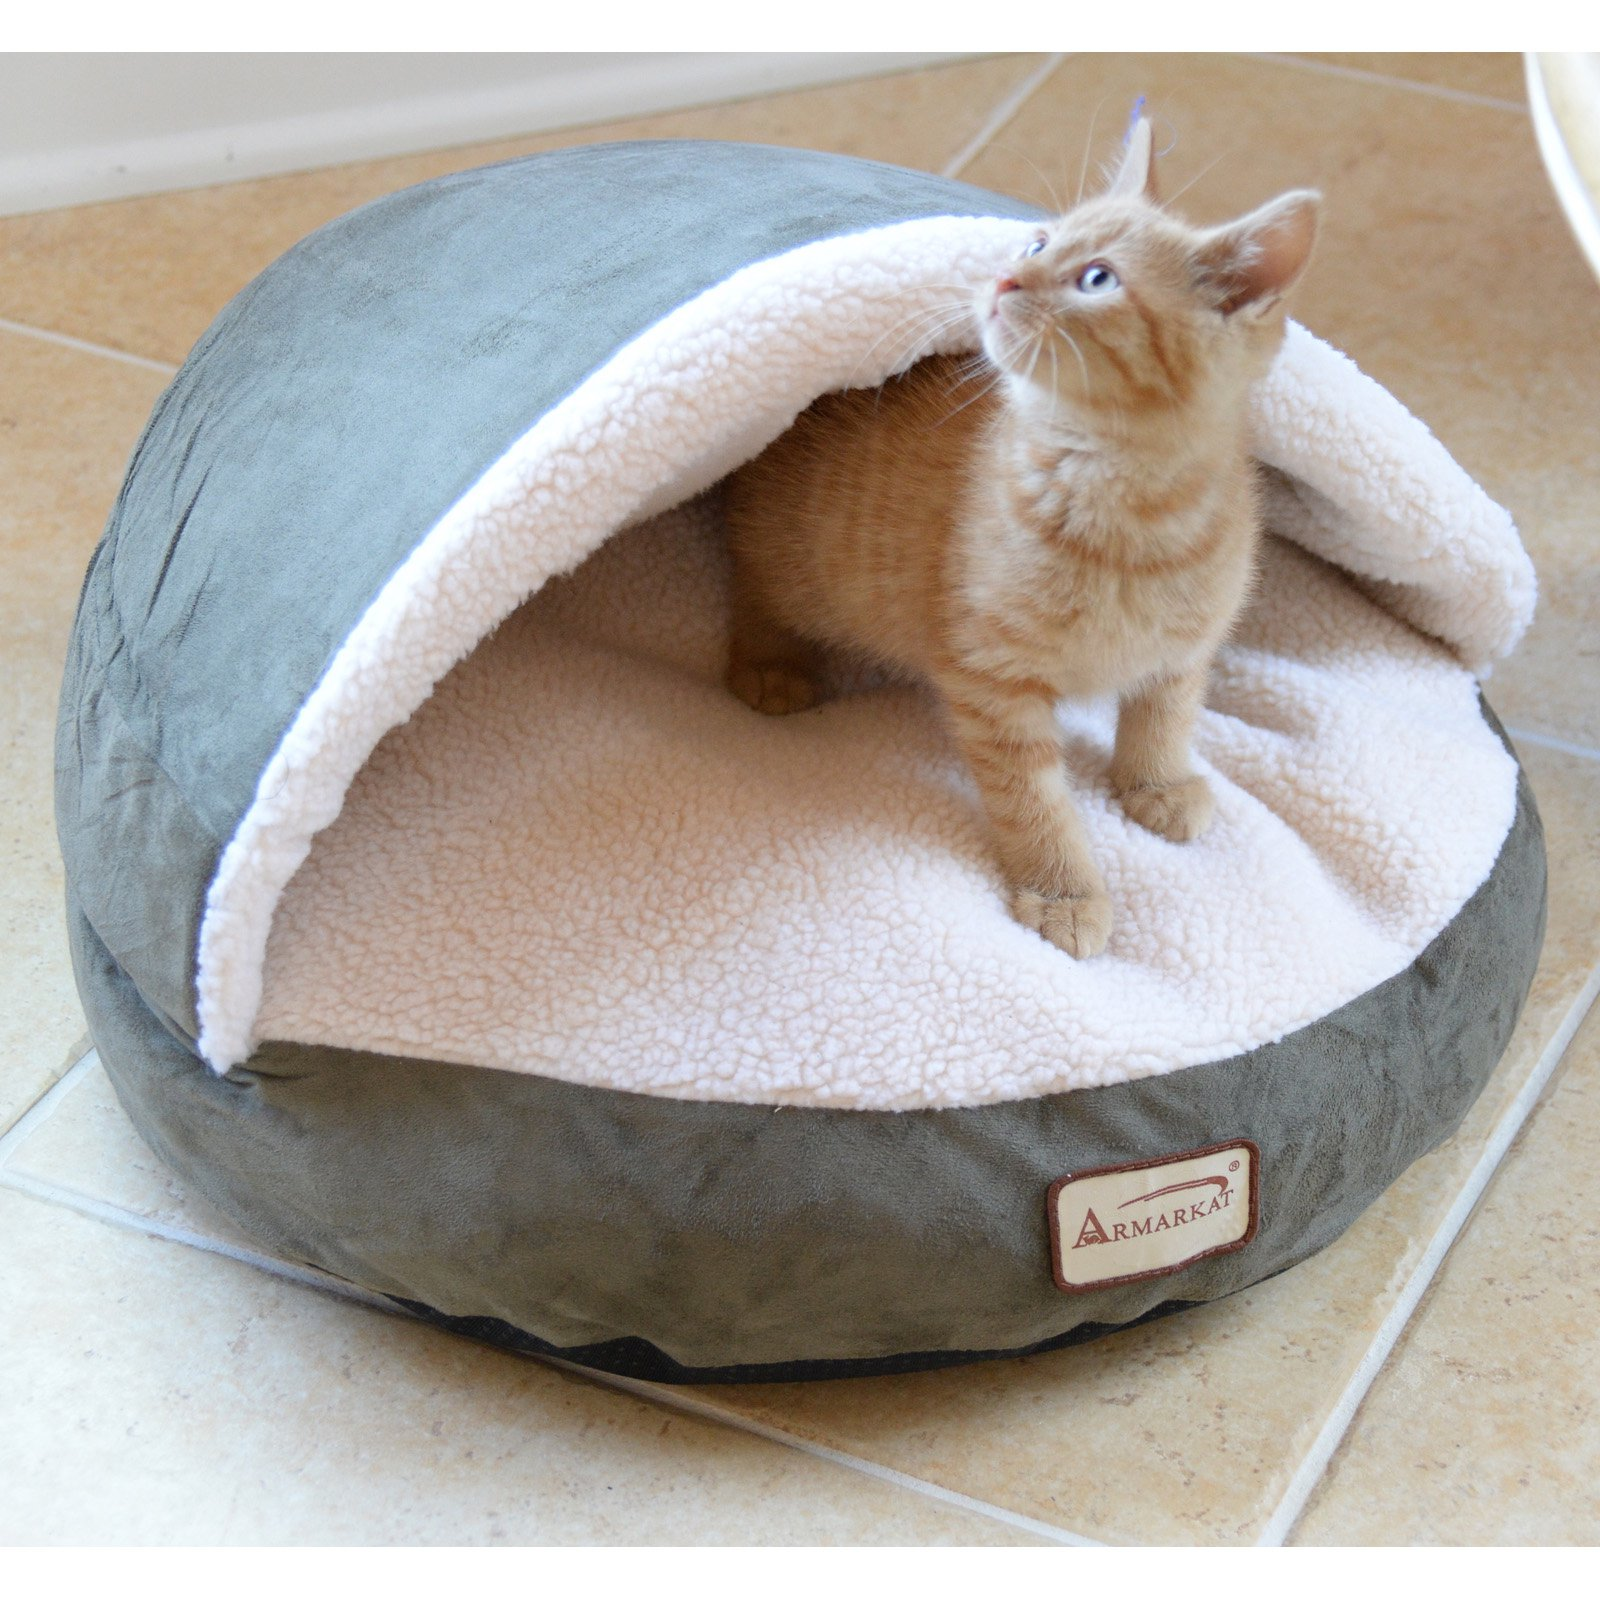 Armarkat Cat Bed, Laurel Green and Ivory, C31HML/MB